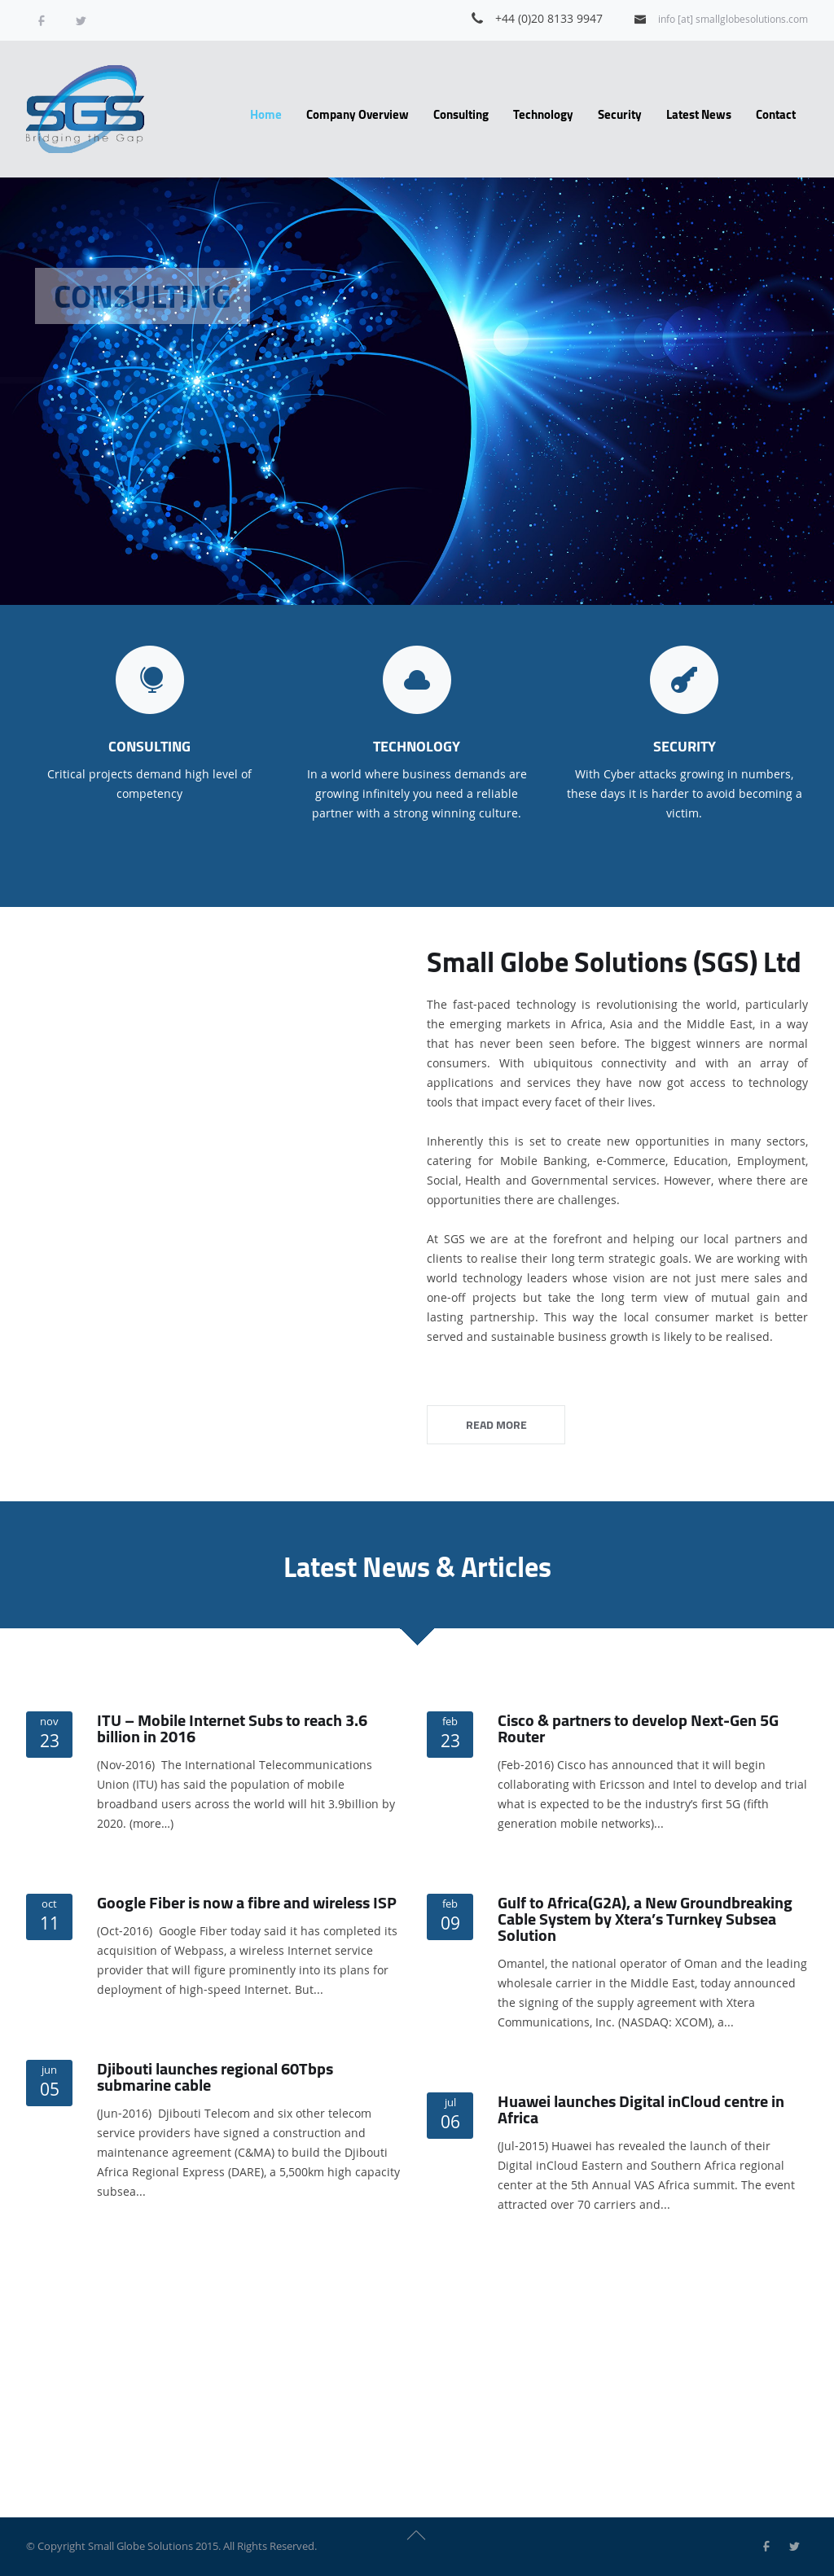 Small Globe Solutions Competitors, Revenue and Employees - Owler